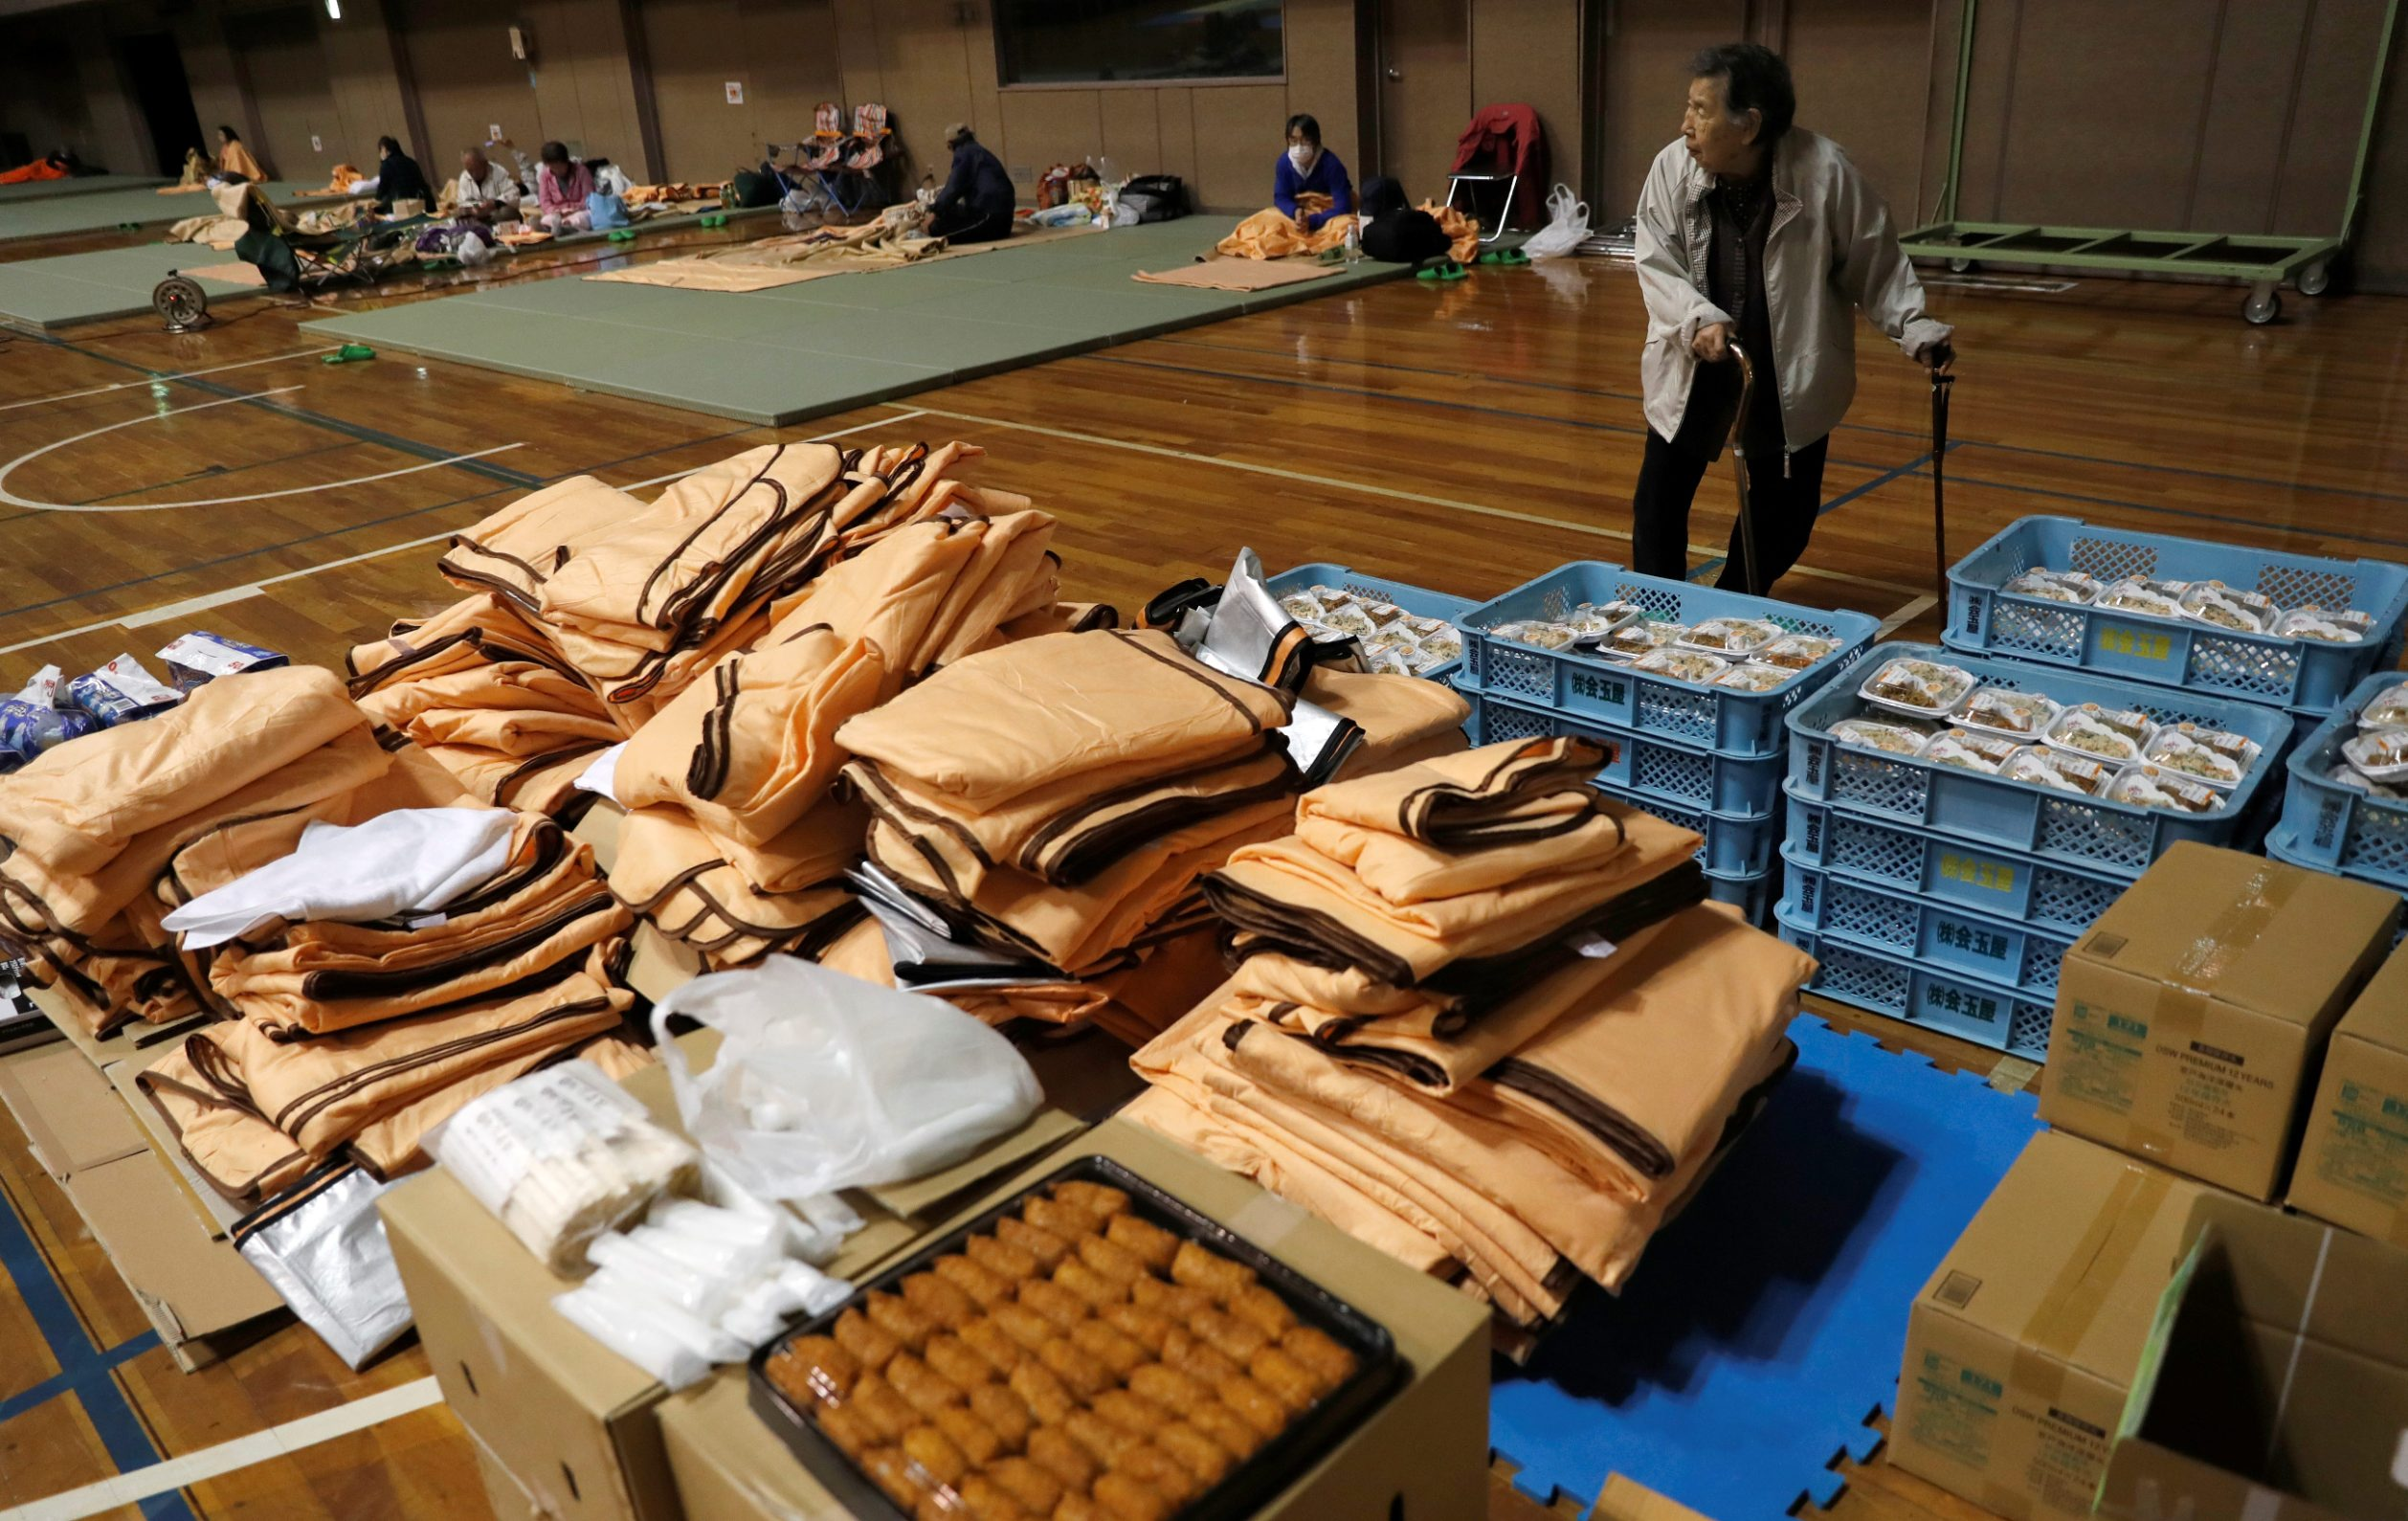 A person walks past goods provided in the evacuation centre for affected by the flood after Typhoon Hagibis in Nagano, Nagano Prefecture, Japan, October 13, 2019. REUTERS/Kim Kyung-Hoon